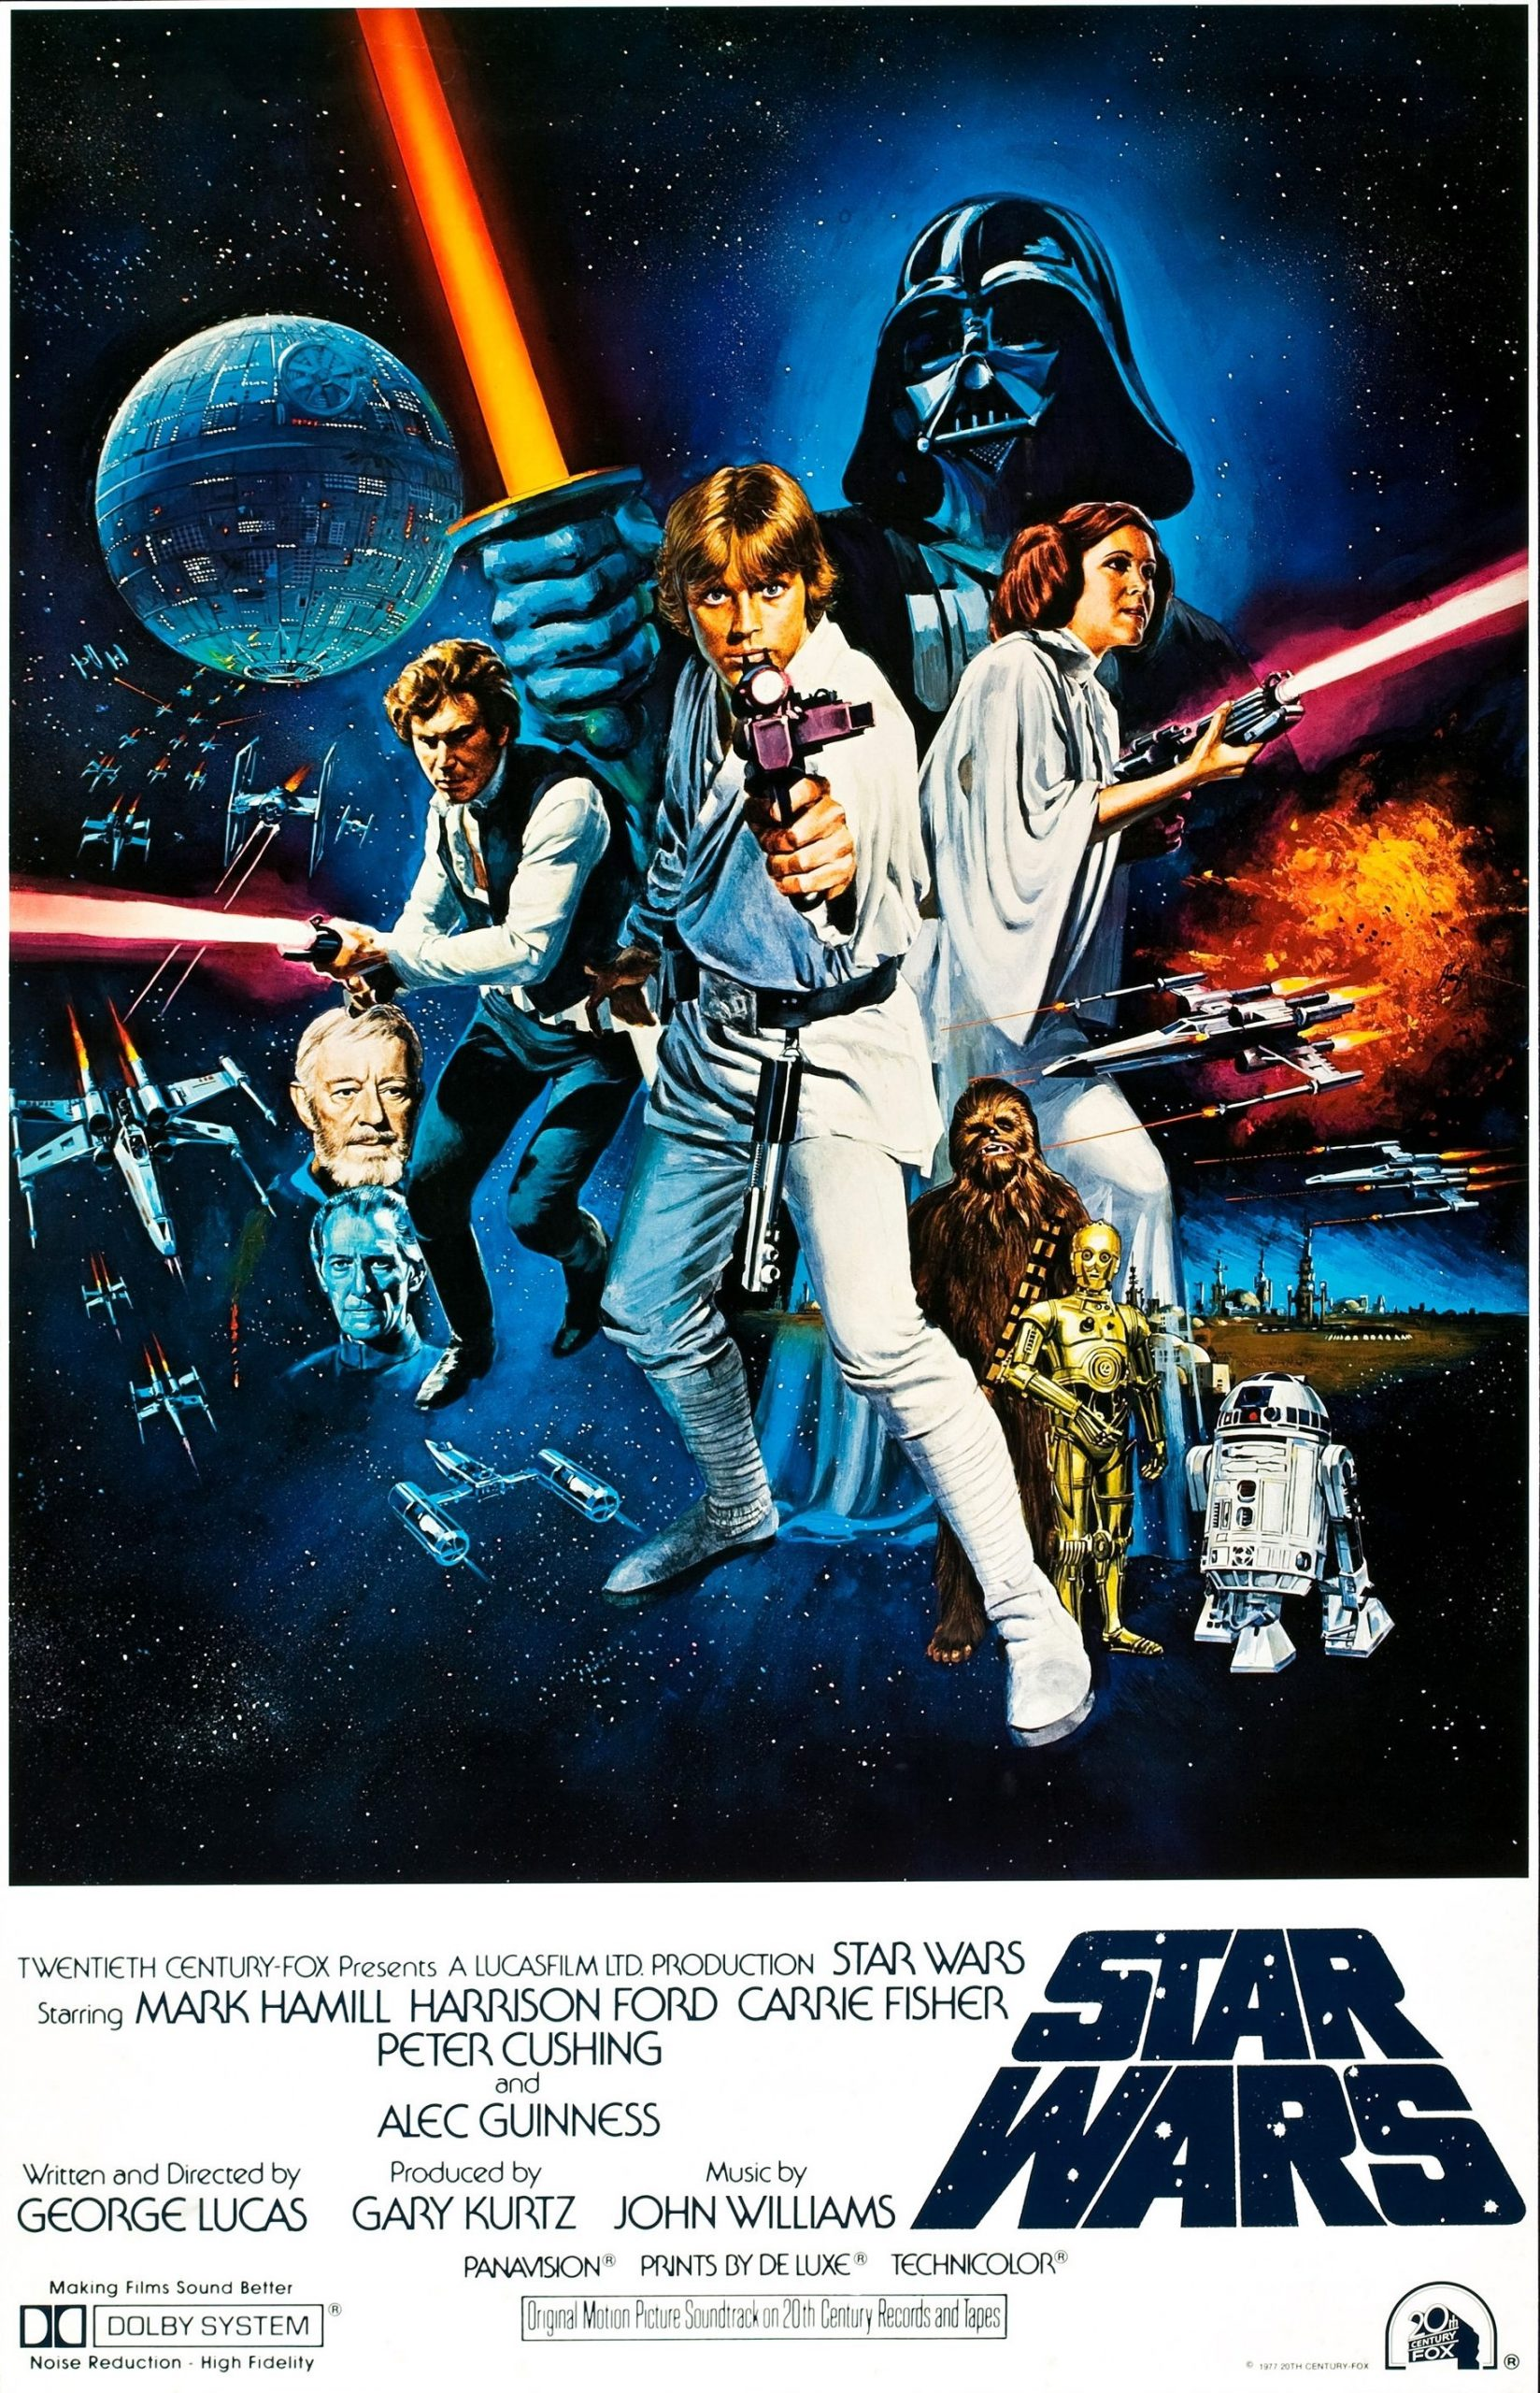 Star Wars movie poster art